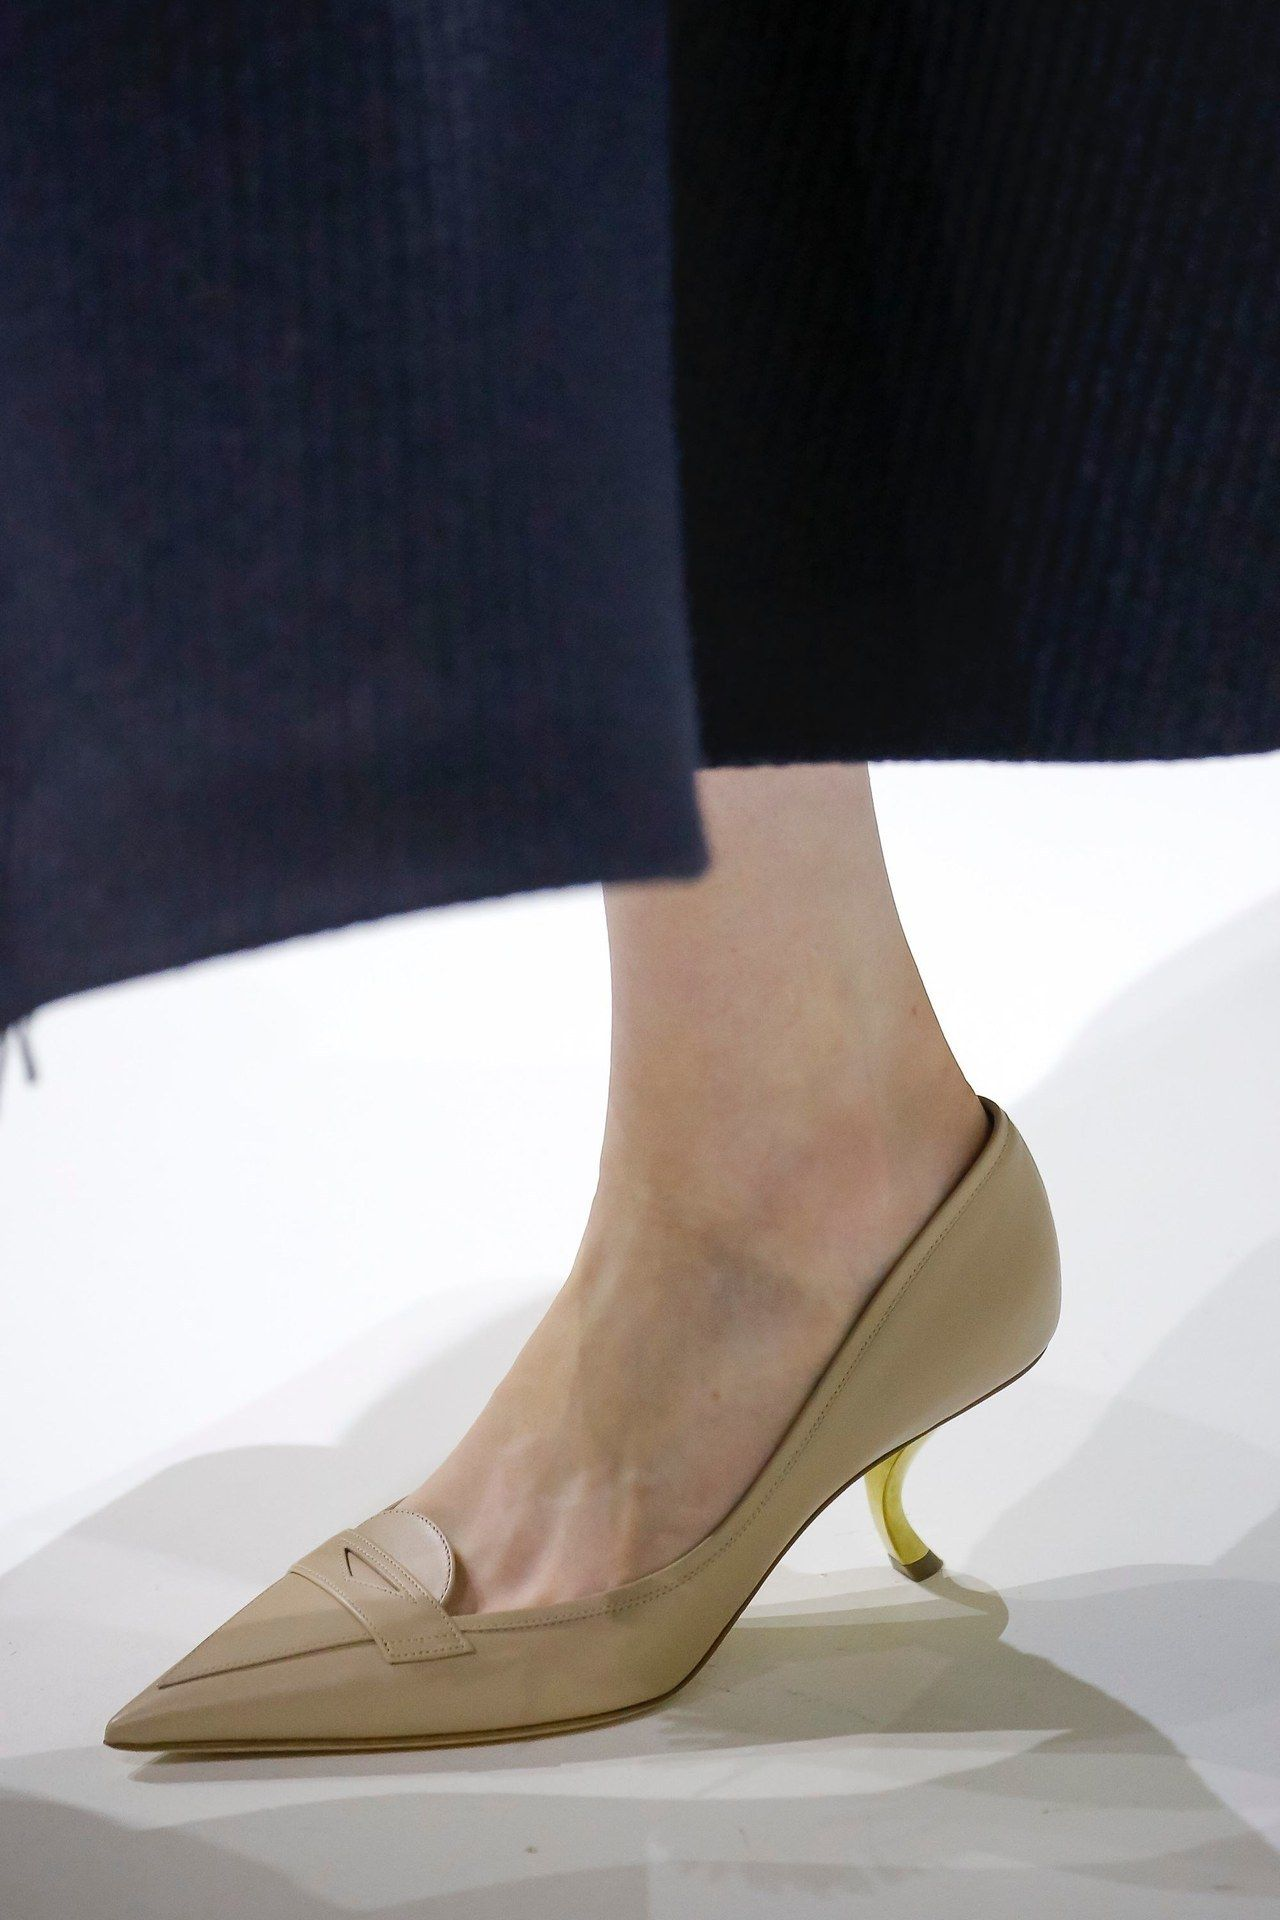 Kitten Heels At Christian Dior Fall 2018 Couture Pfw Fashion Christian Dior Couture Fashion